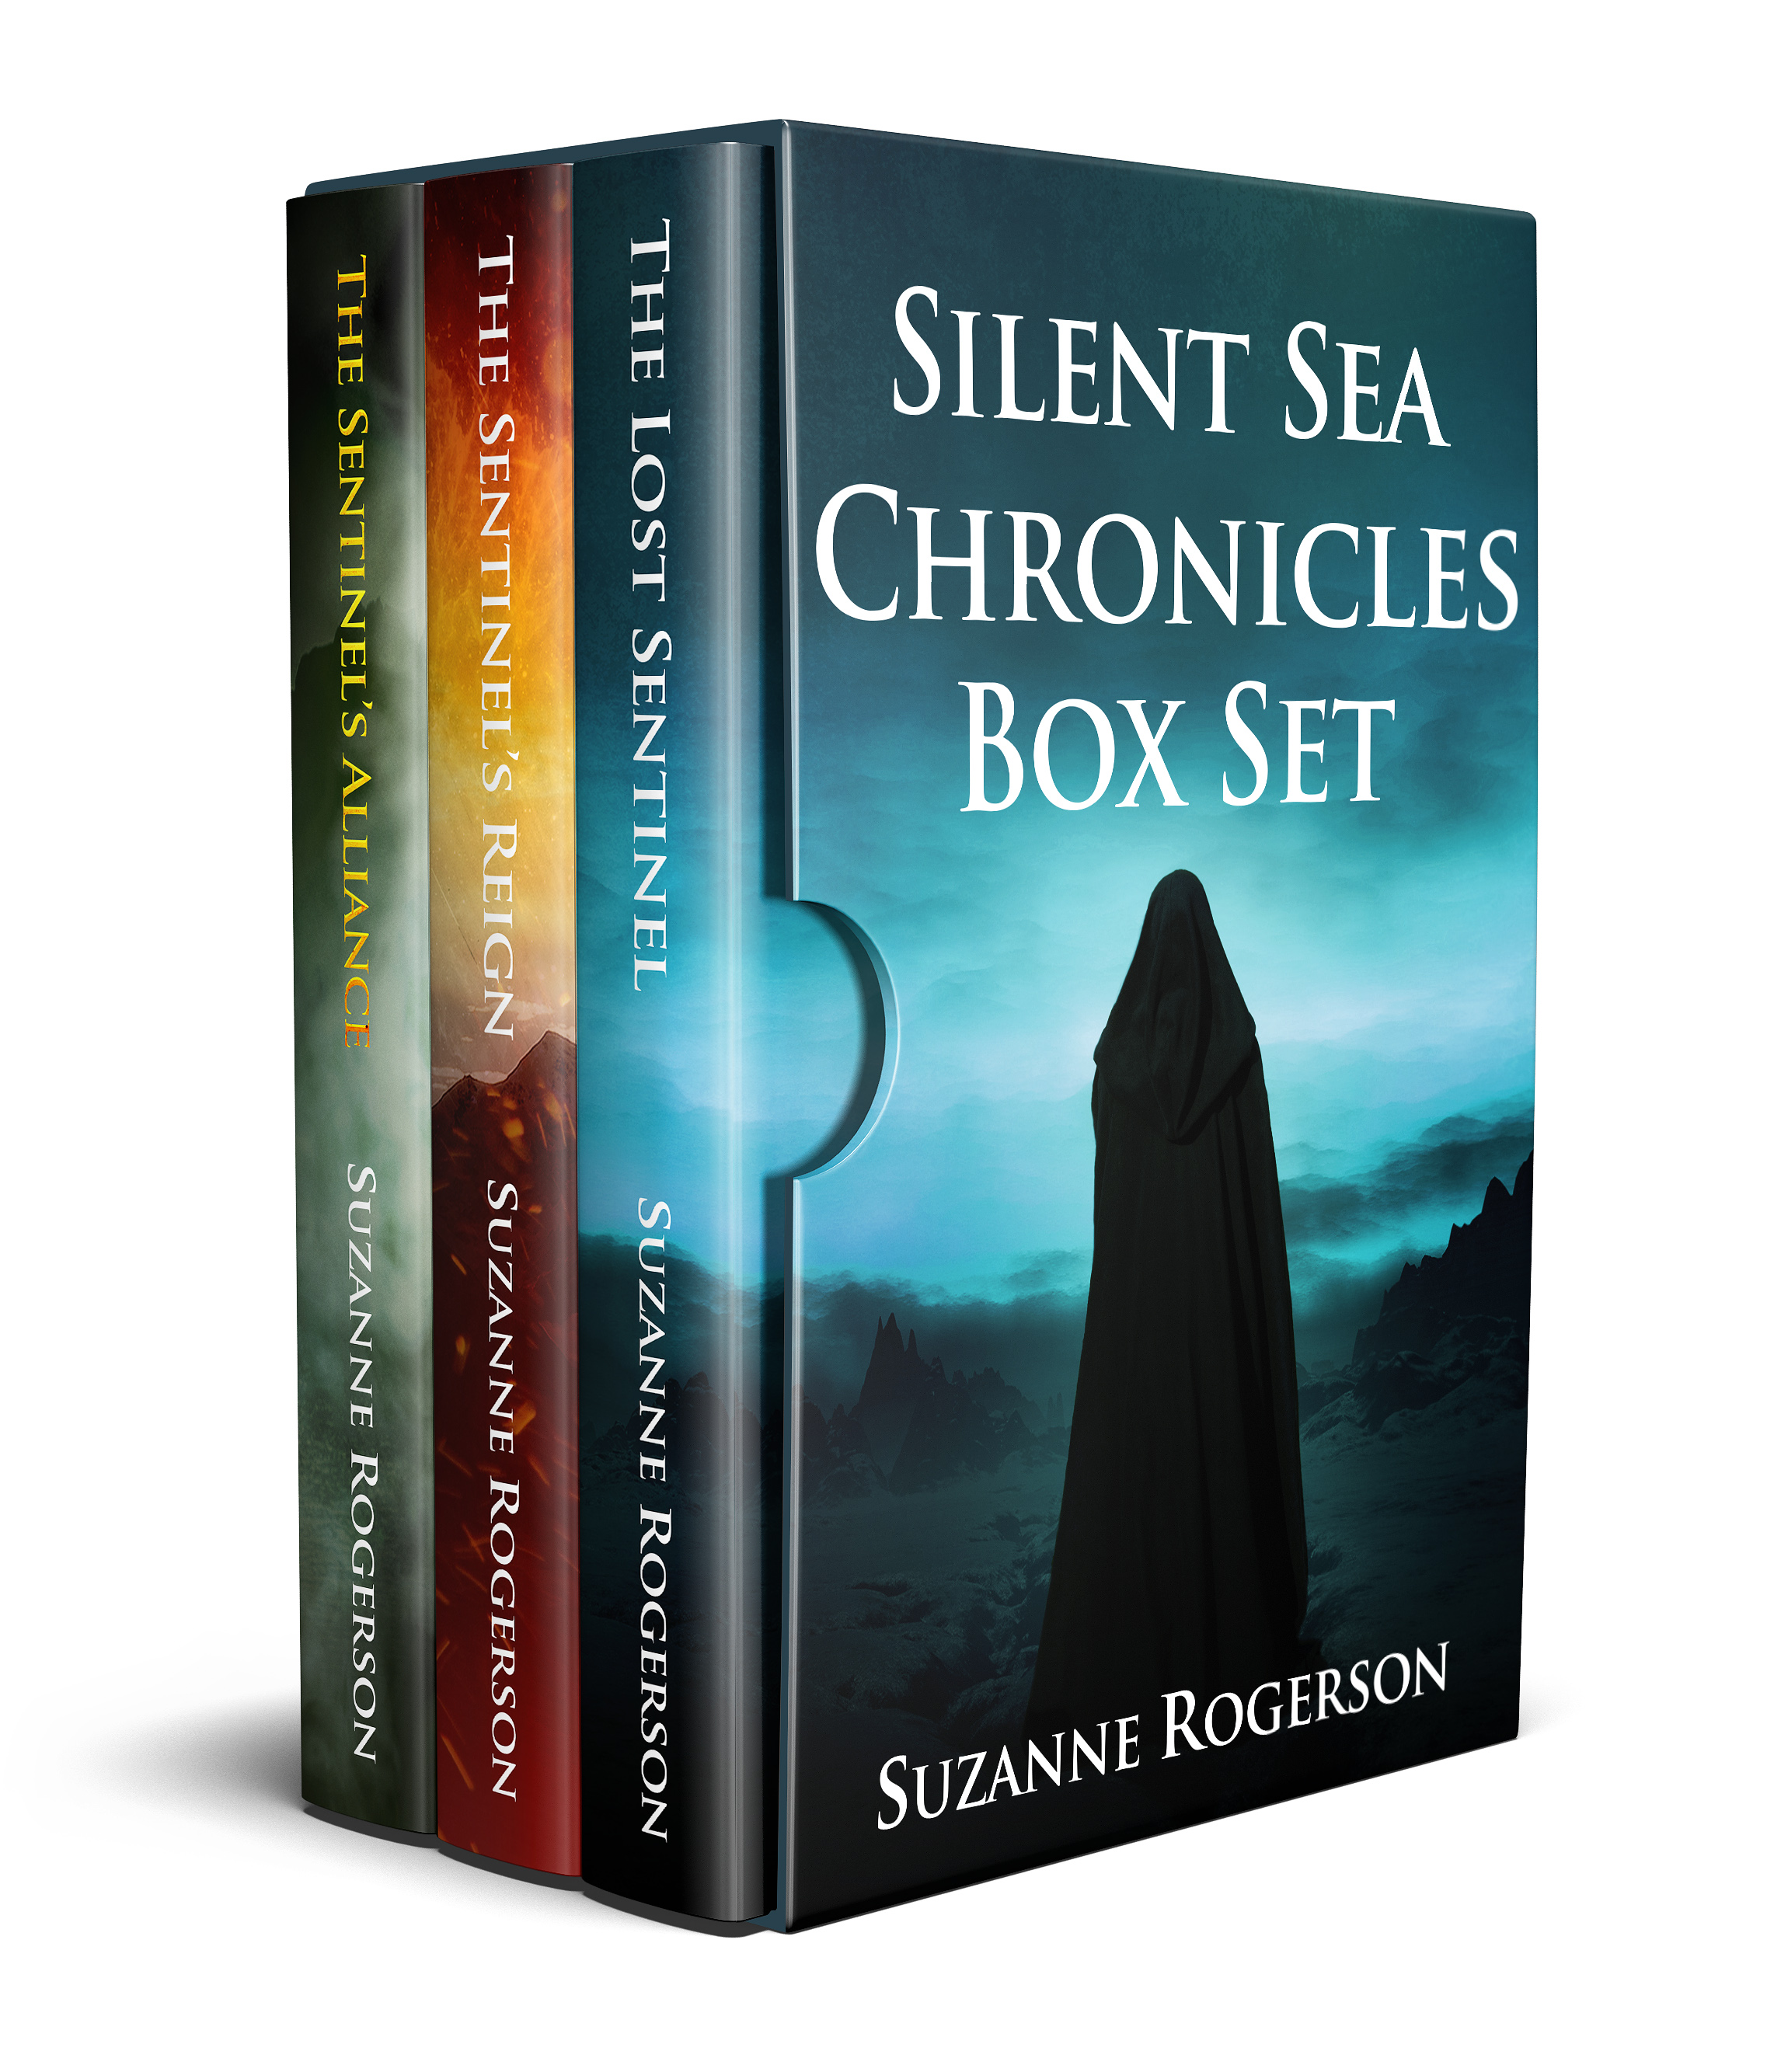 Silent Sea Chronicles Box Set complete display